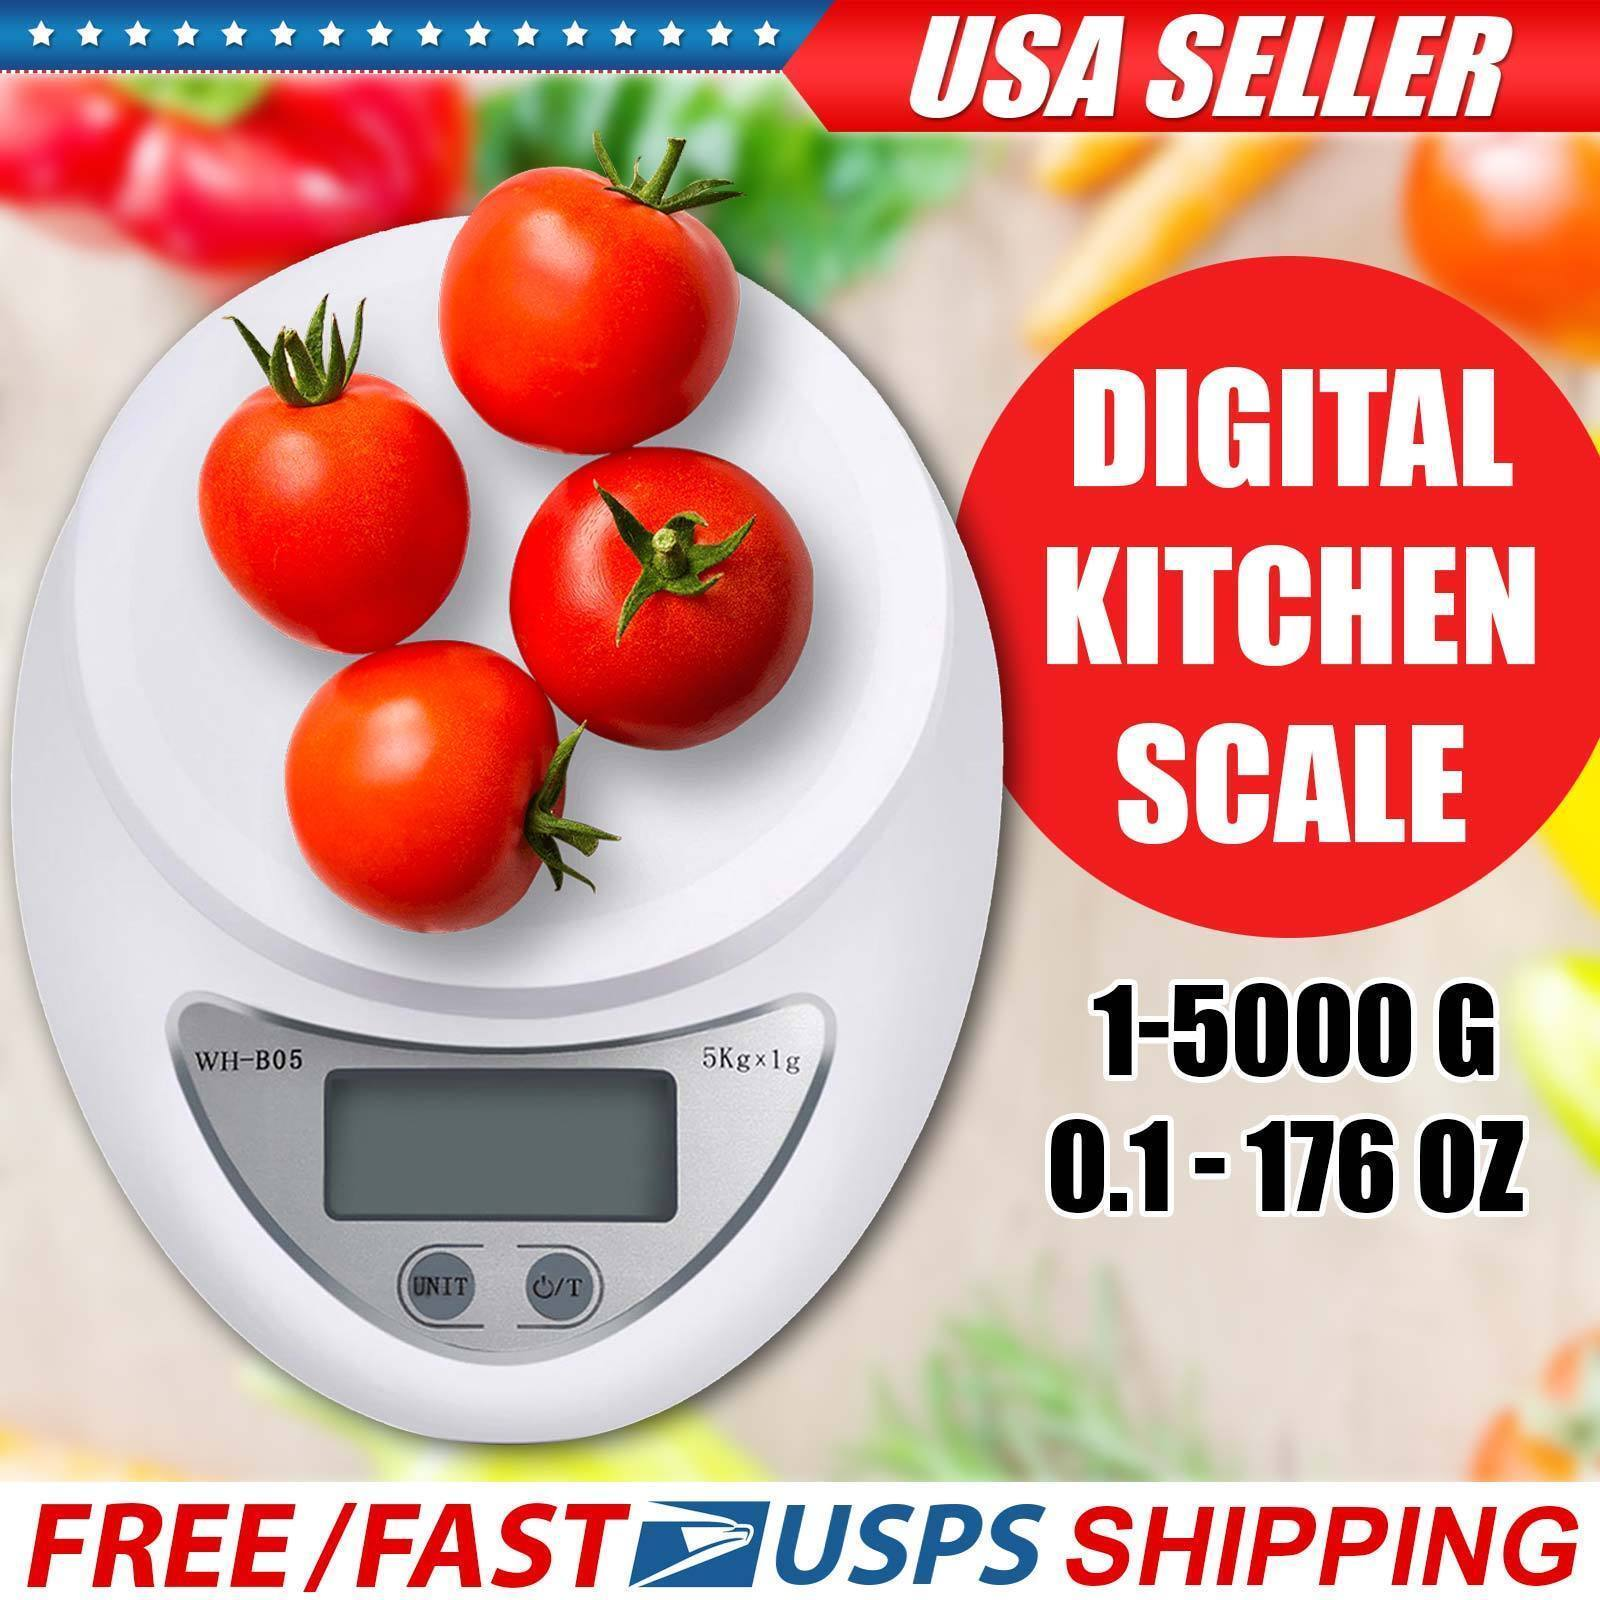 New Digital Kitchen Food Cooking Scale Weigh in Pounds, Grams, Ounces, and KG Home & Garden